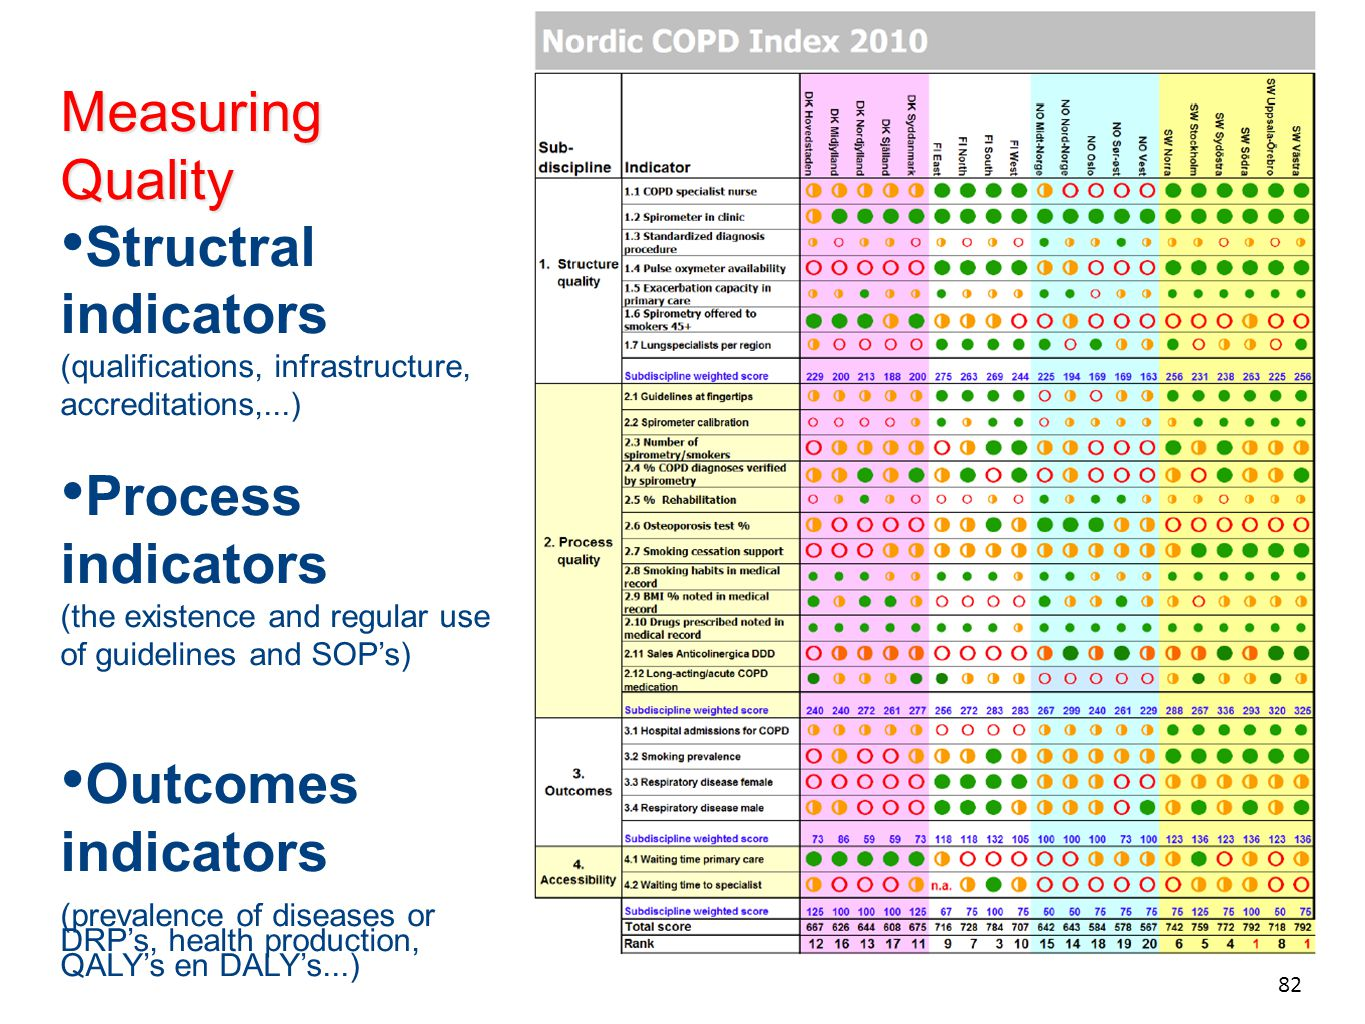 Measuring Quality Structral indicators (qualifications, infrastructure, accreditations,...)